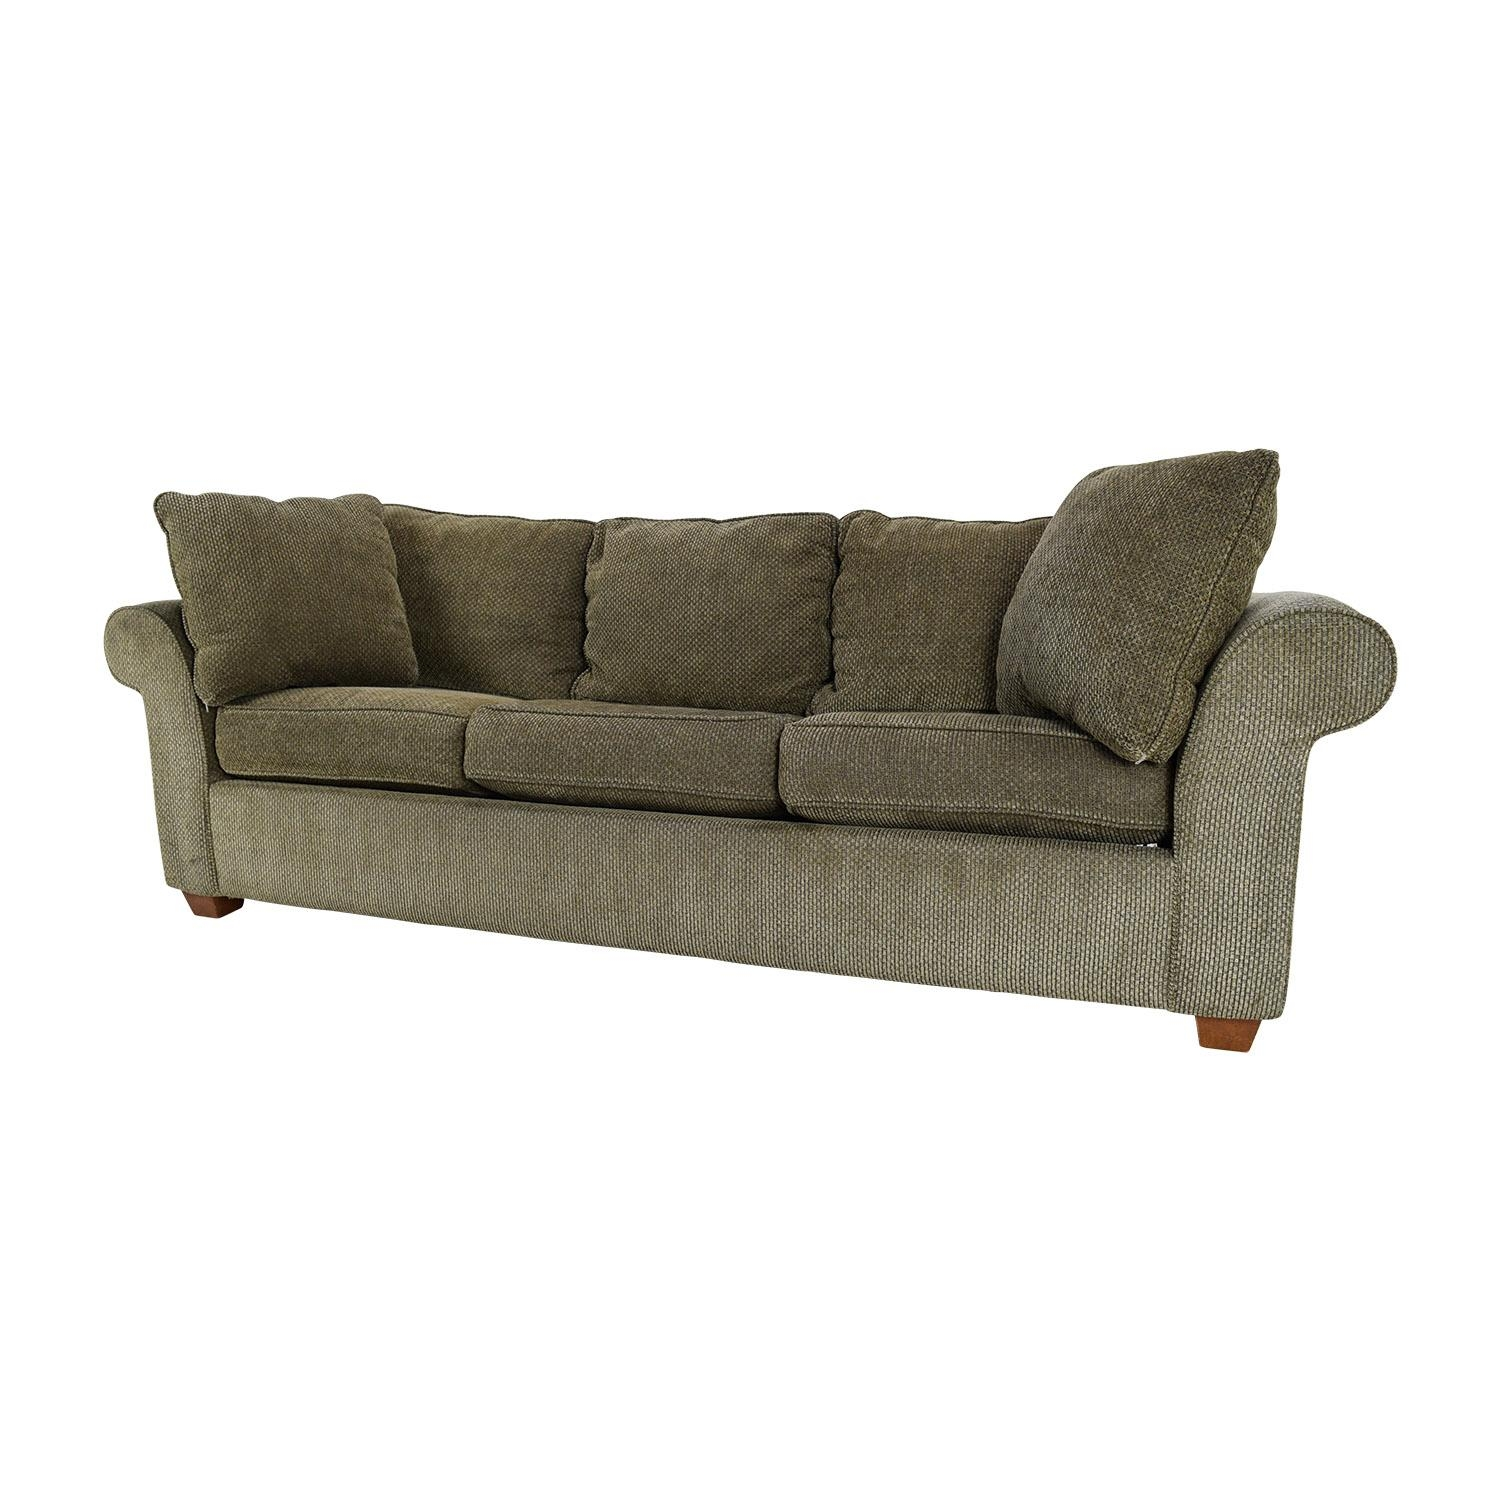 82% Off - Bloomingdale's Bloomingdale's Pullout Sofa / Sofas inside Bloomingdales Sofas